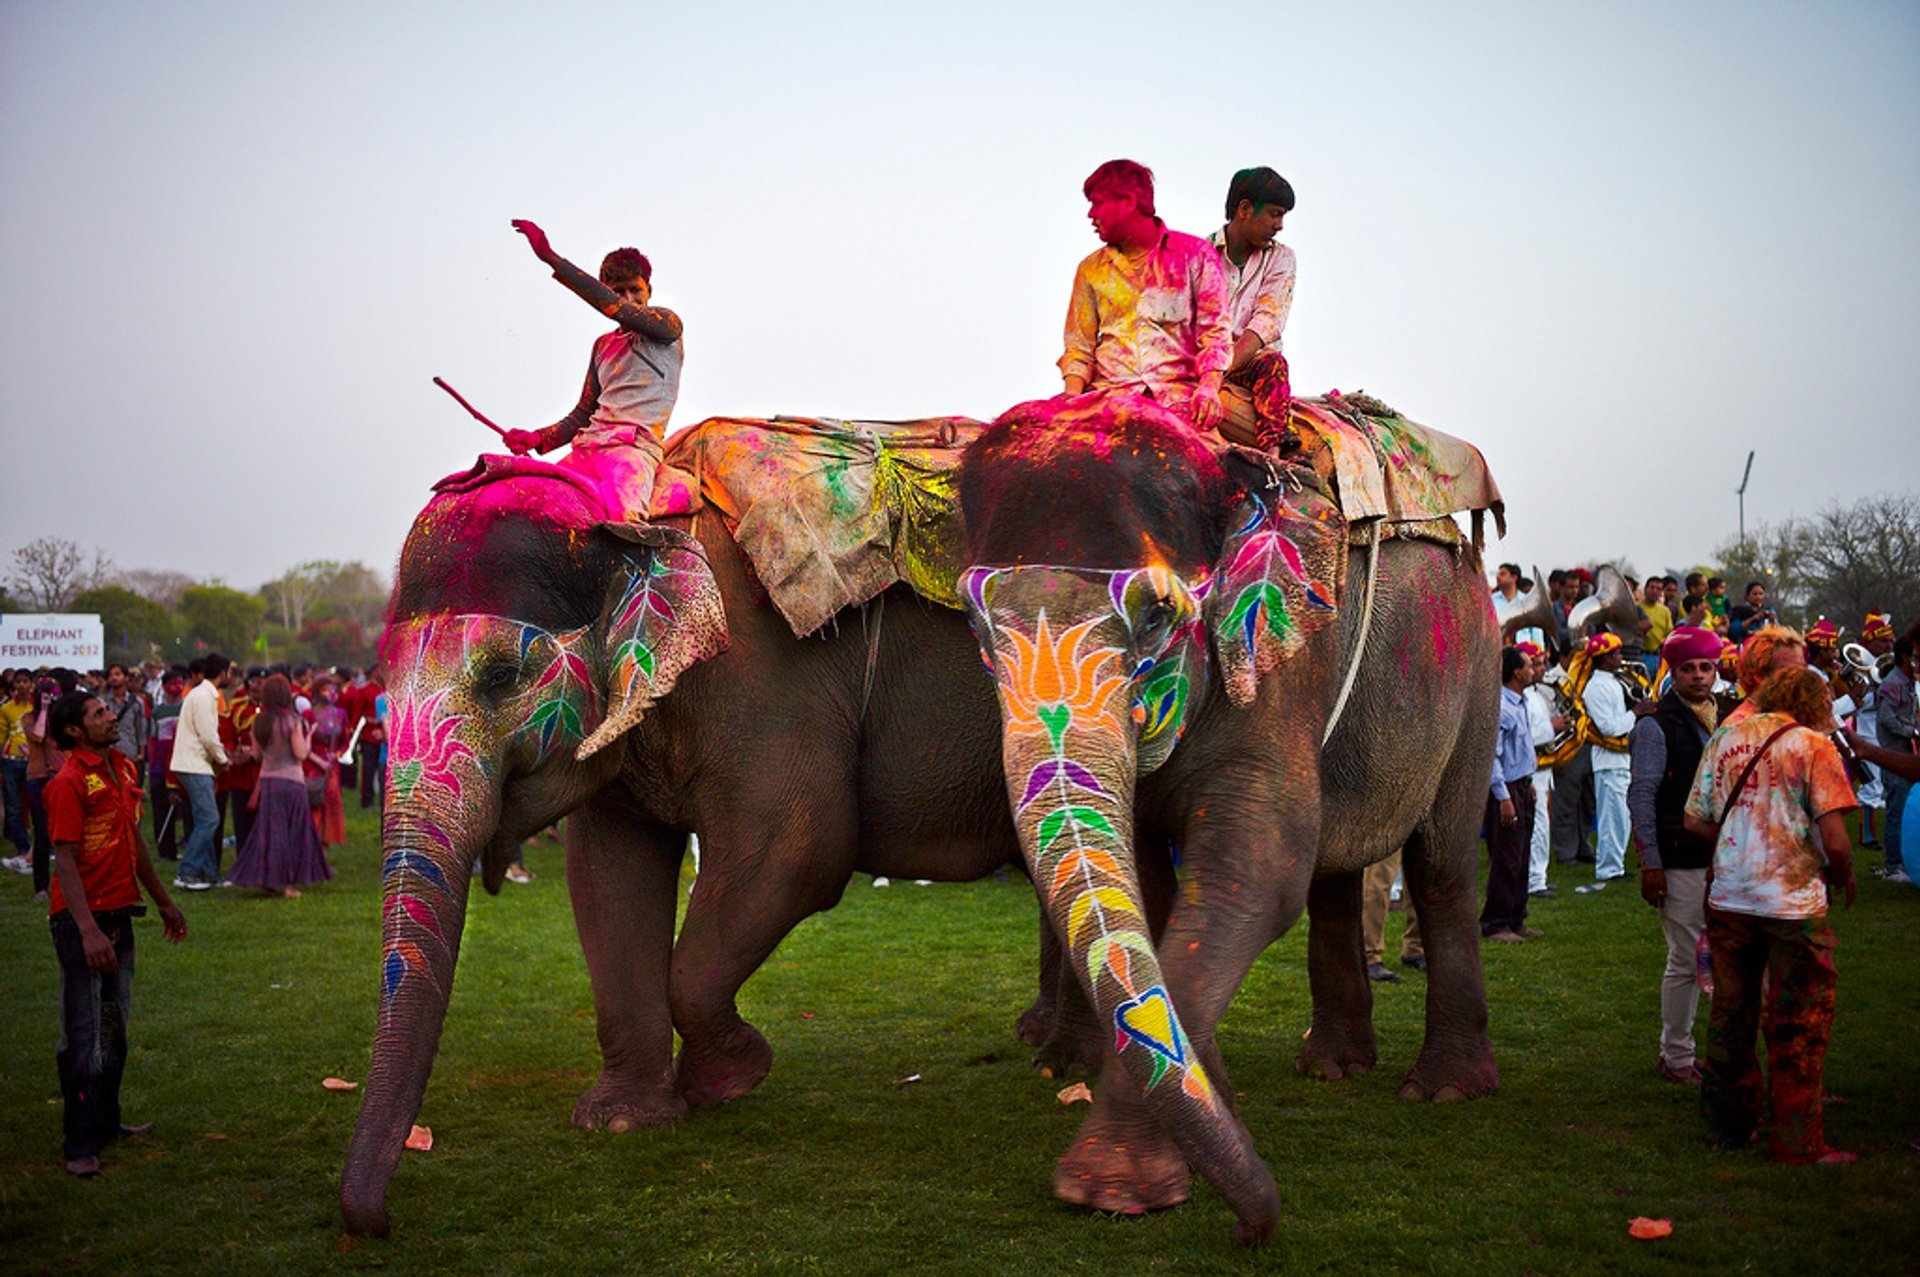 Elephant Festival in India 2019 - Best Time